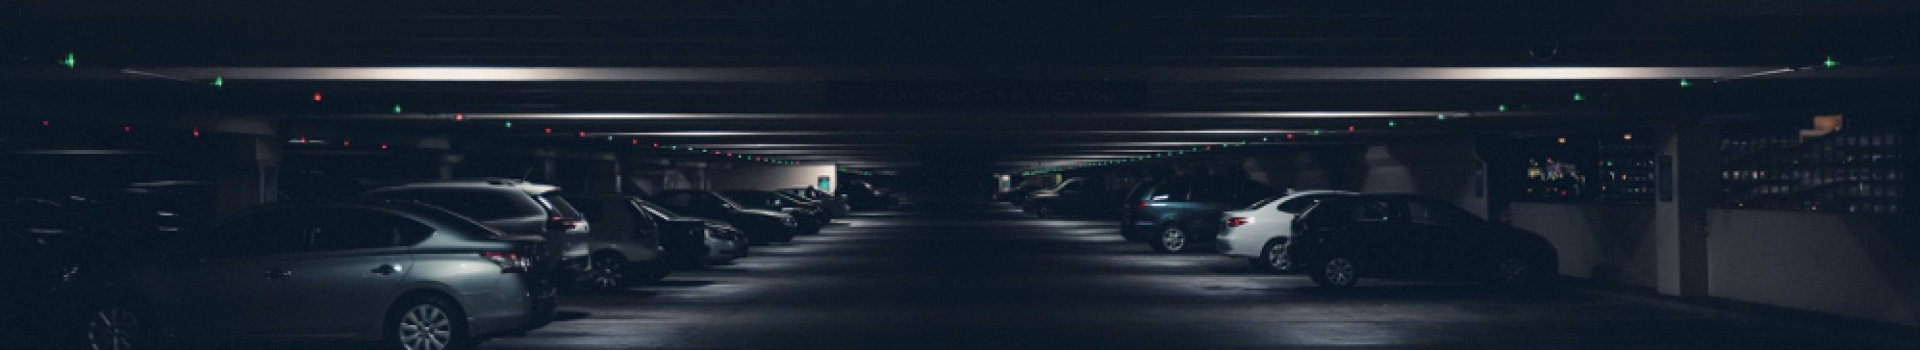 SolutionSolutions for Residential Car Parks